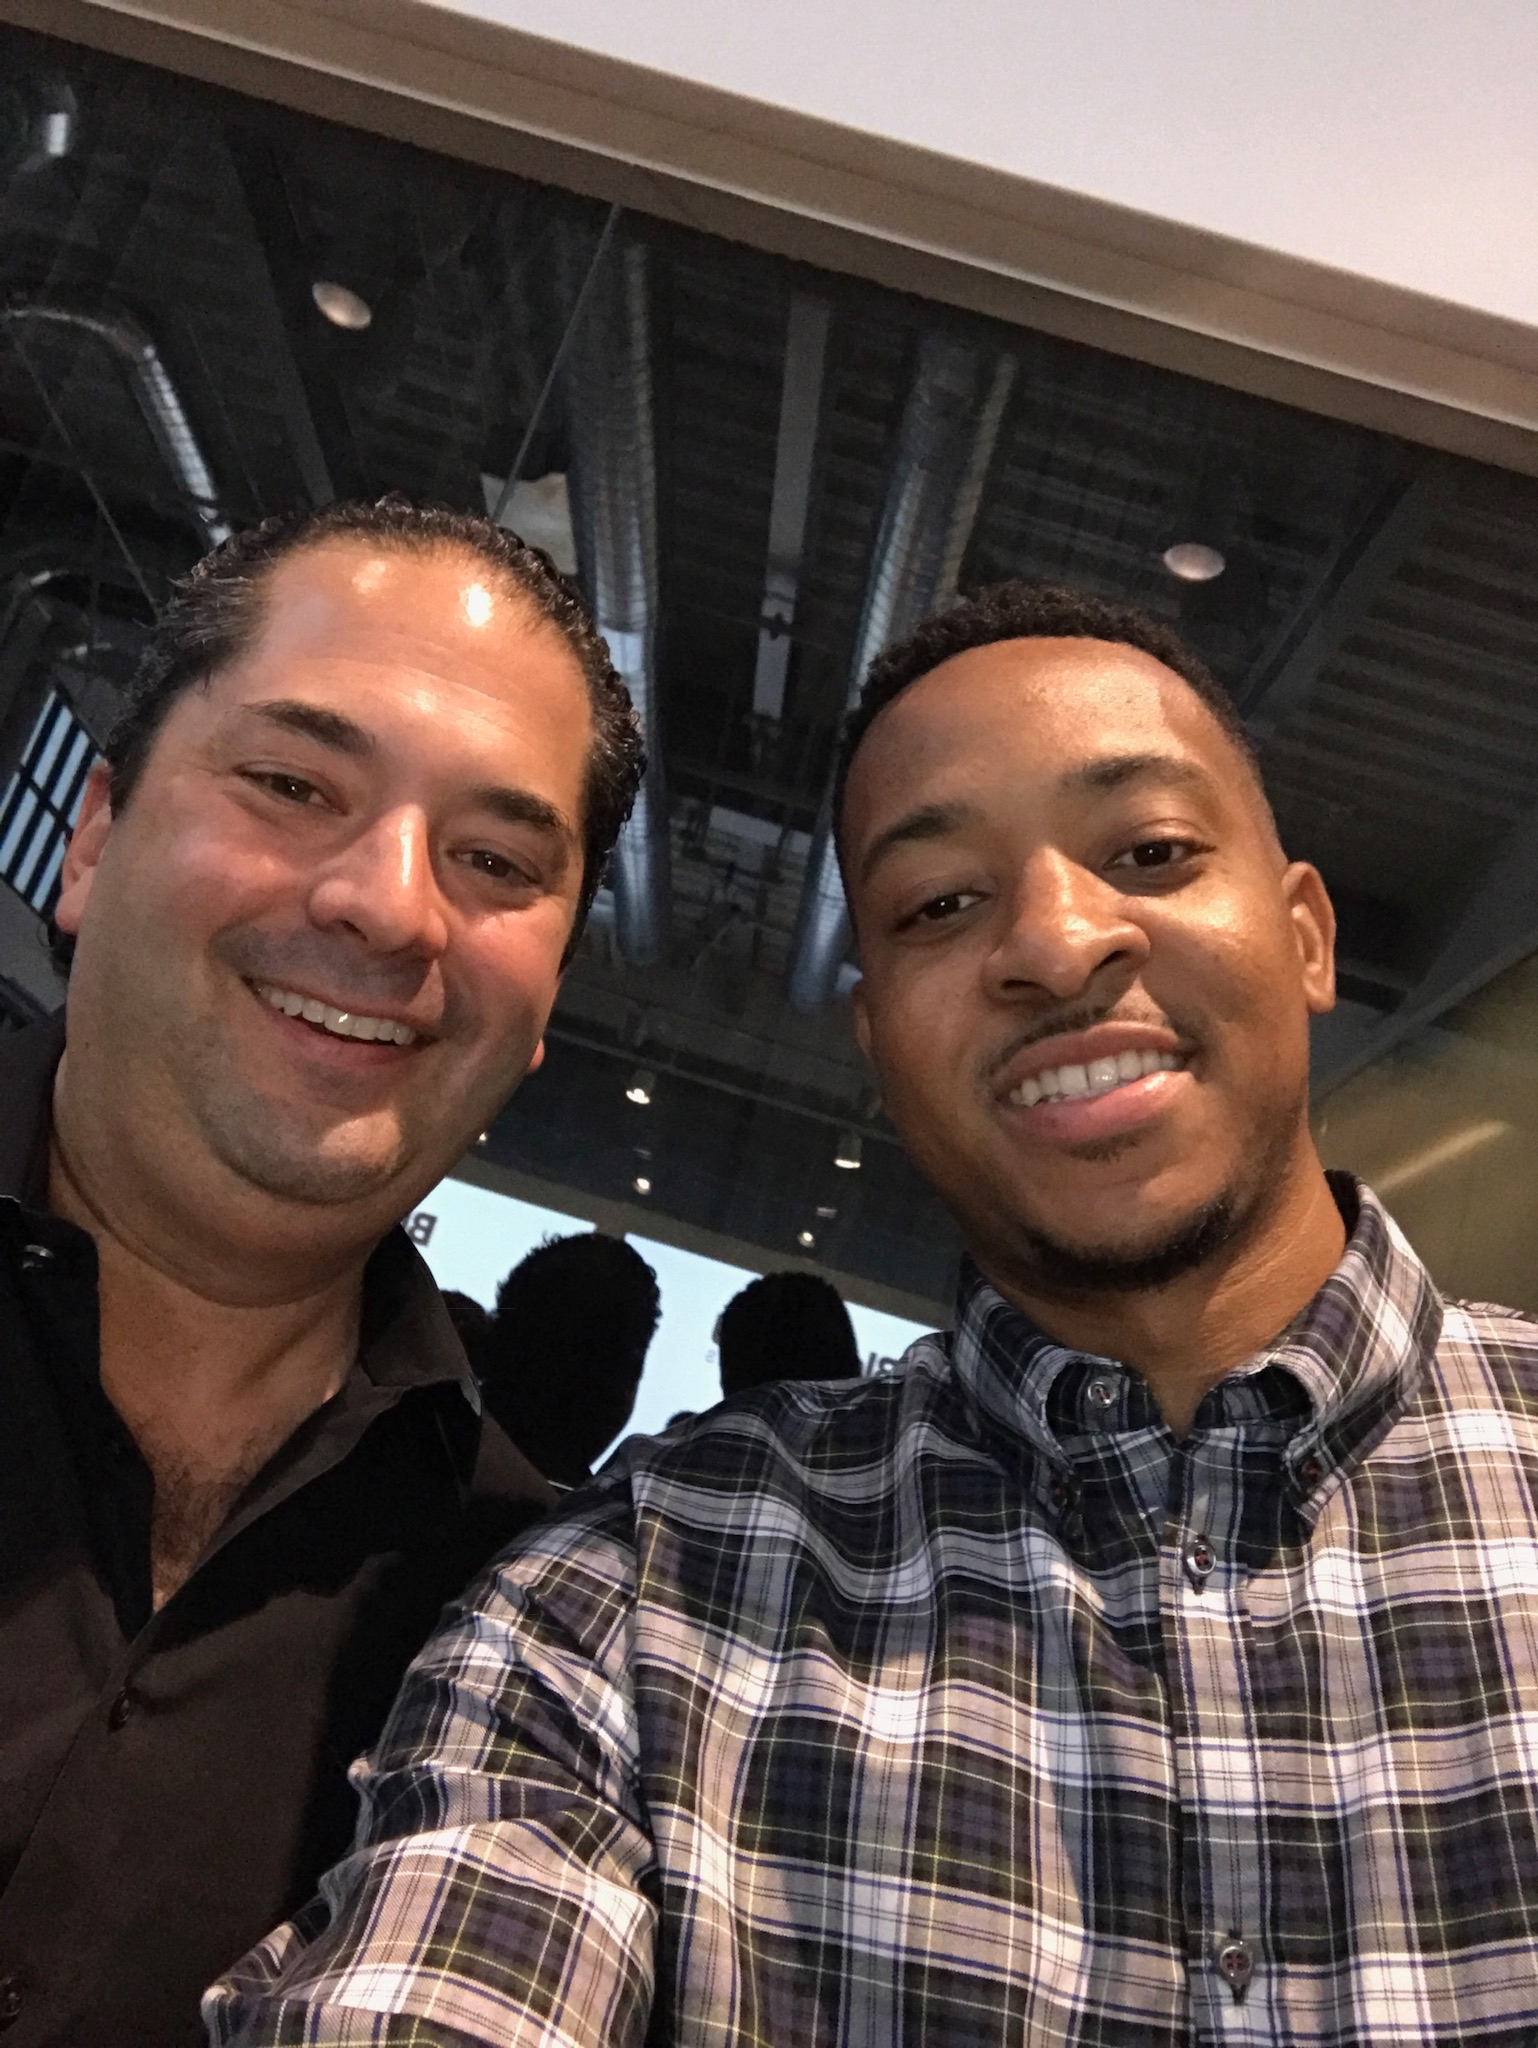 Wayne Kimmel and CJ McCollum